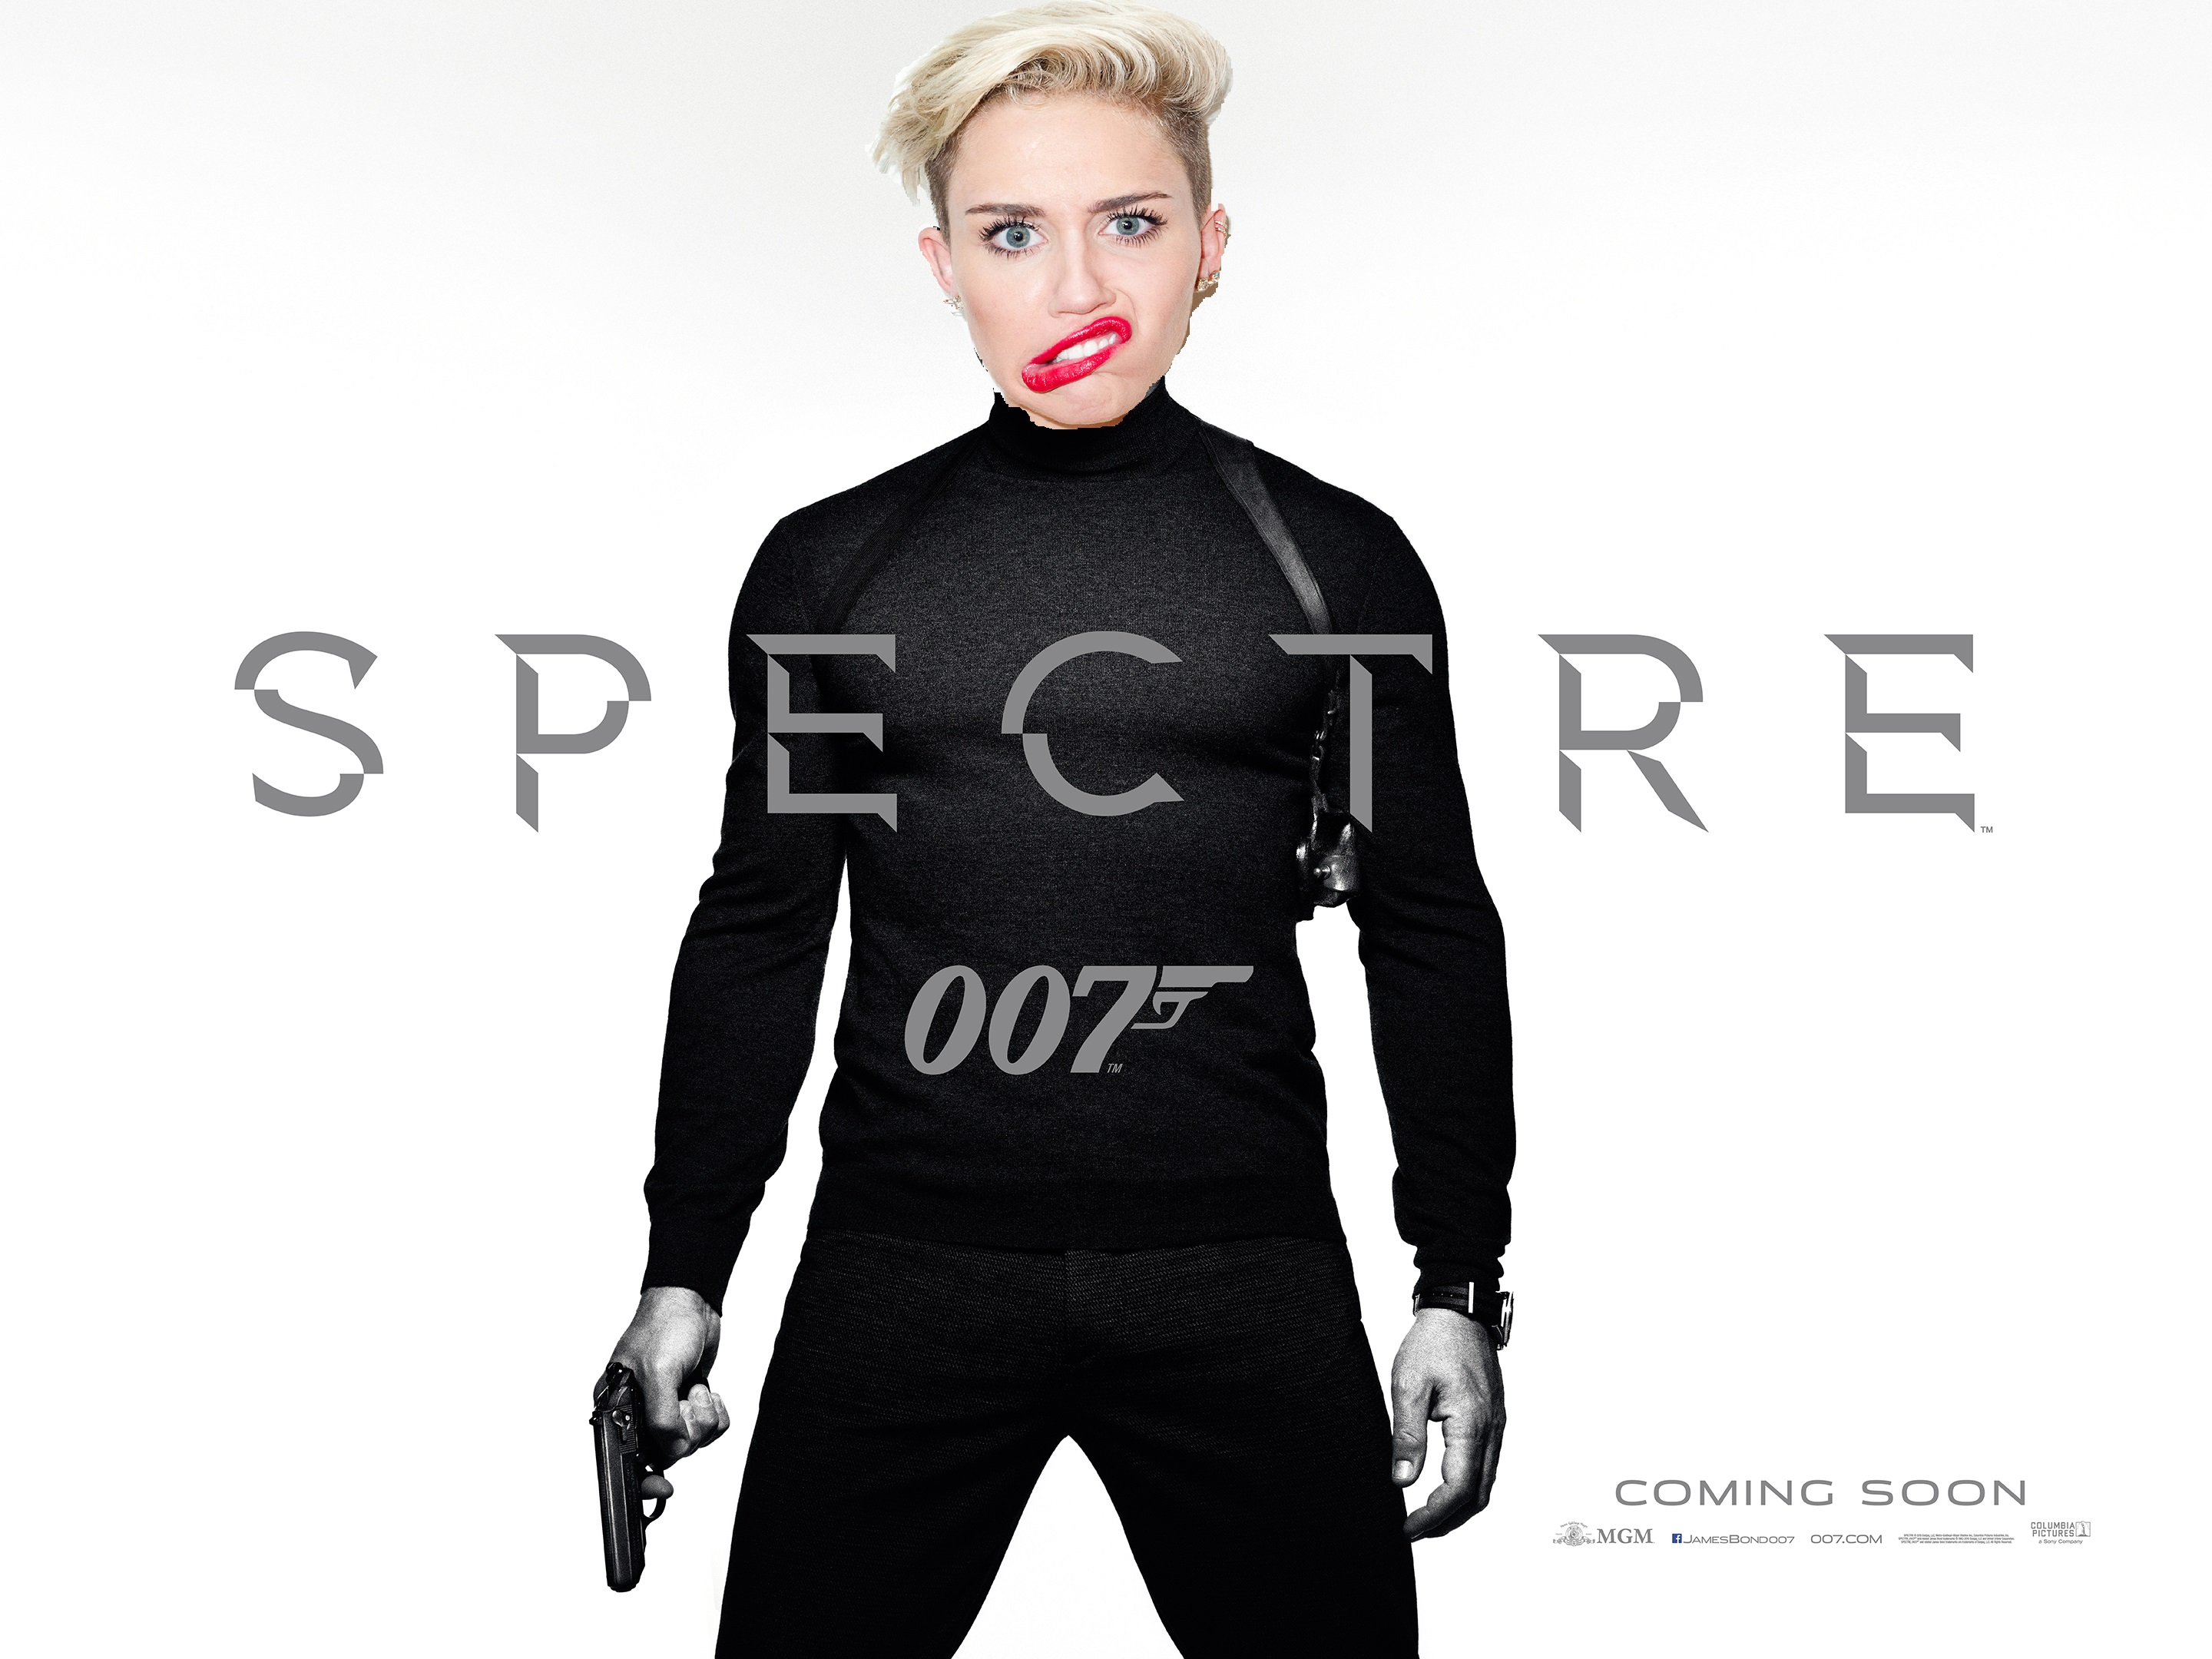 MILEY CYRUS SINGS BOND SONG FOR SPECTRE